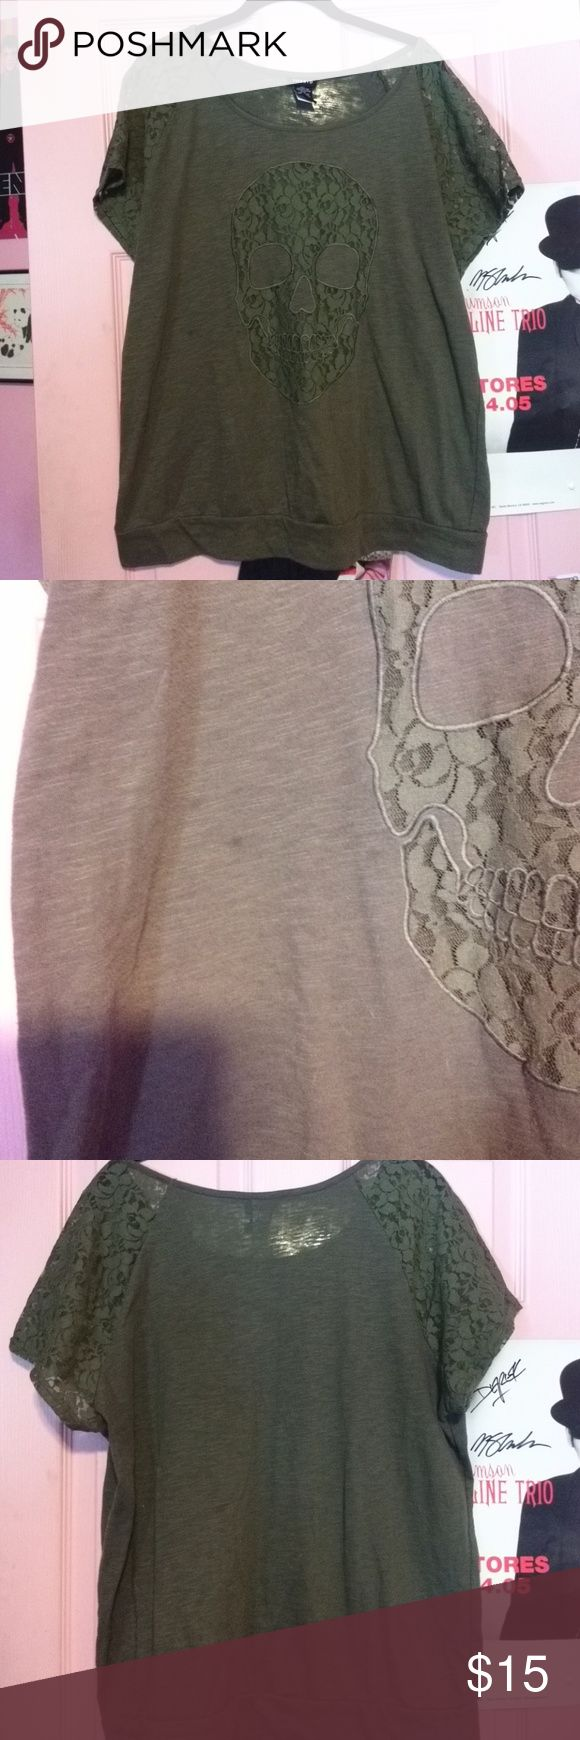 Torrid Lace Skull and Sleeves Blouse A cool olive green top with a lace skull and sleeves. The skull is see-through so you'll need to wear a family underneath. There are a few spots on the front and back from wear but not too noticeable. Size 0. torrid Tops Blouses